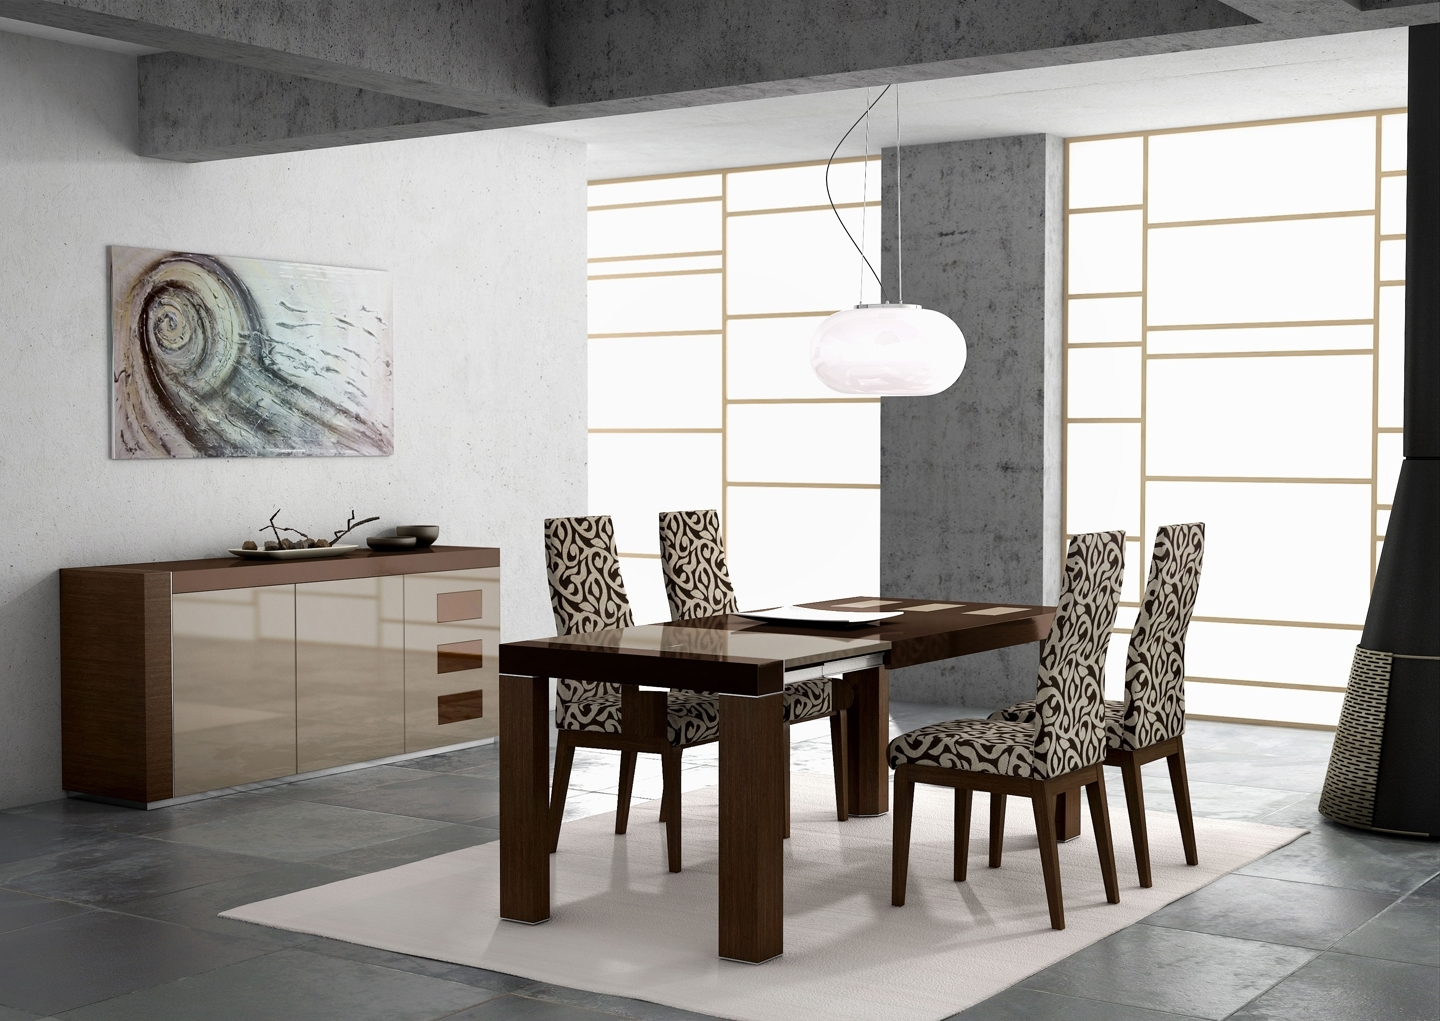 Photos: Irene Table Ada Chairs Lacquered Modern Dining Sets In Favorite Cream Lacquer Dining Tables (Gallery 13 of 25)